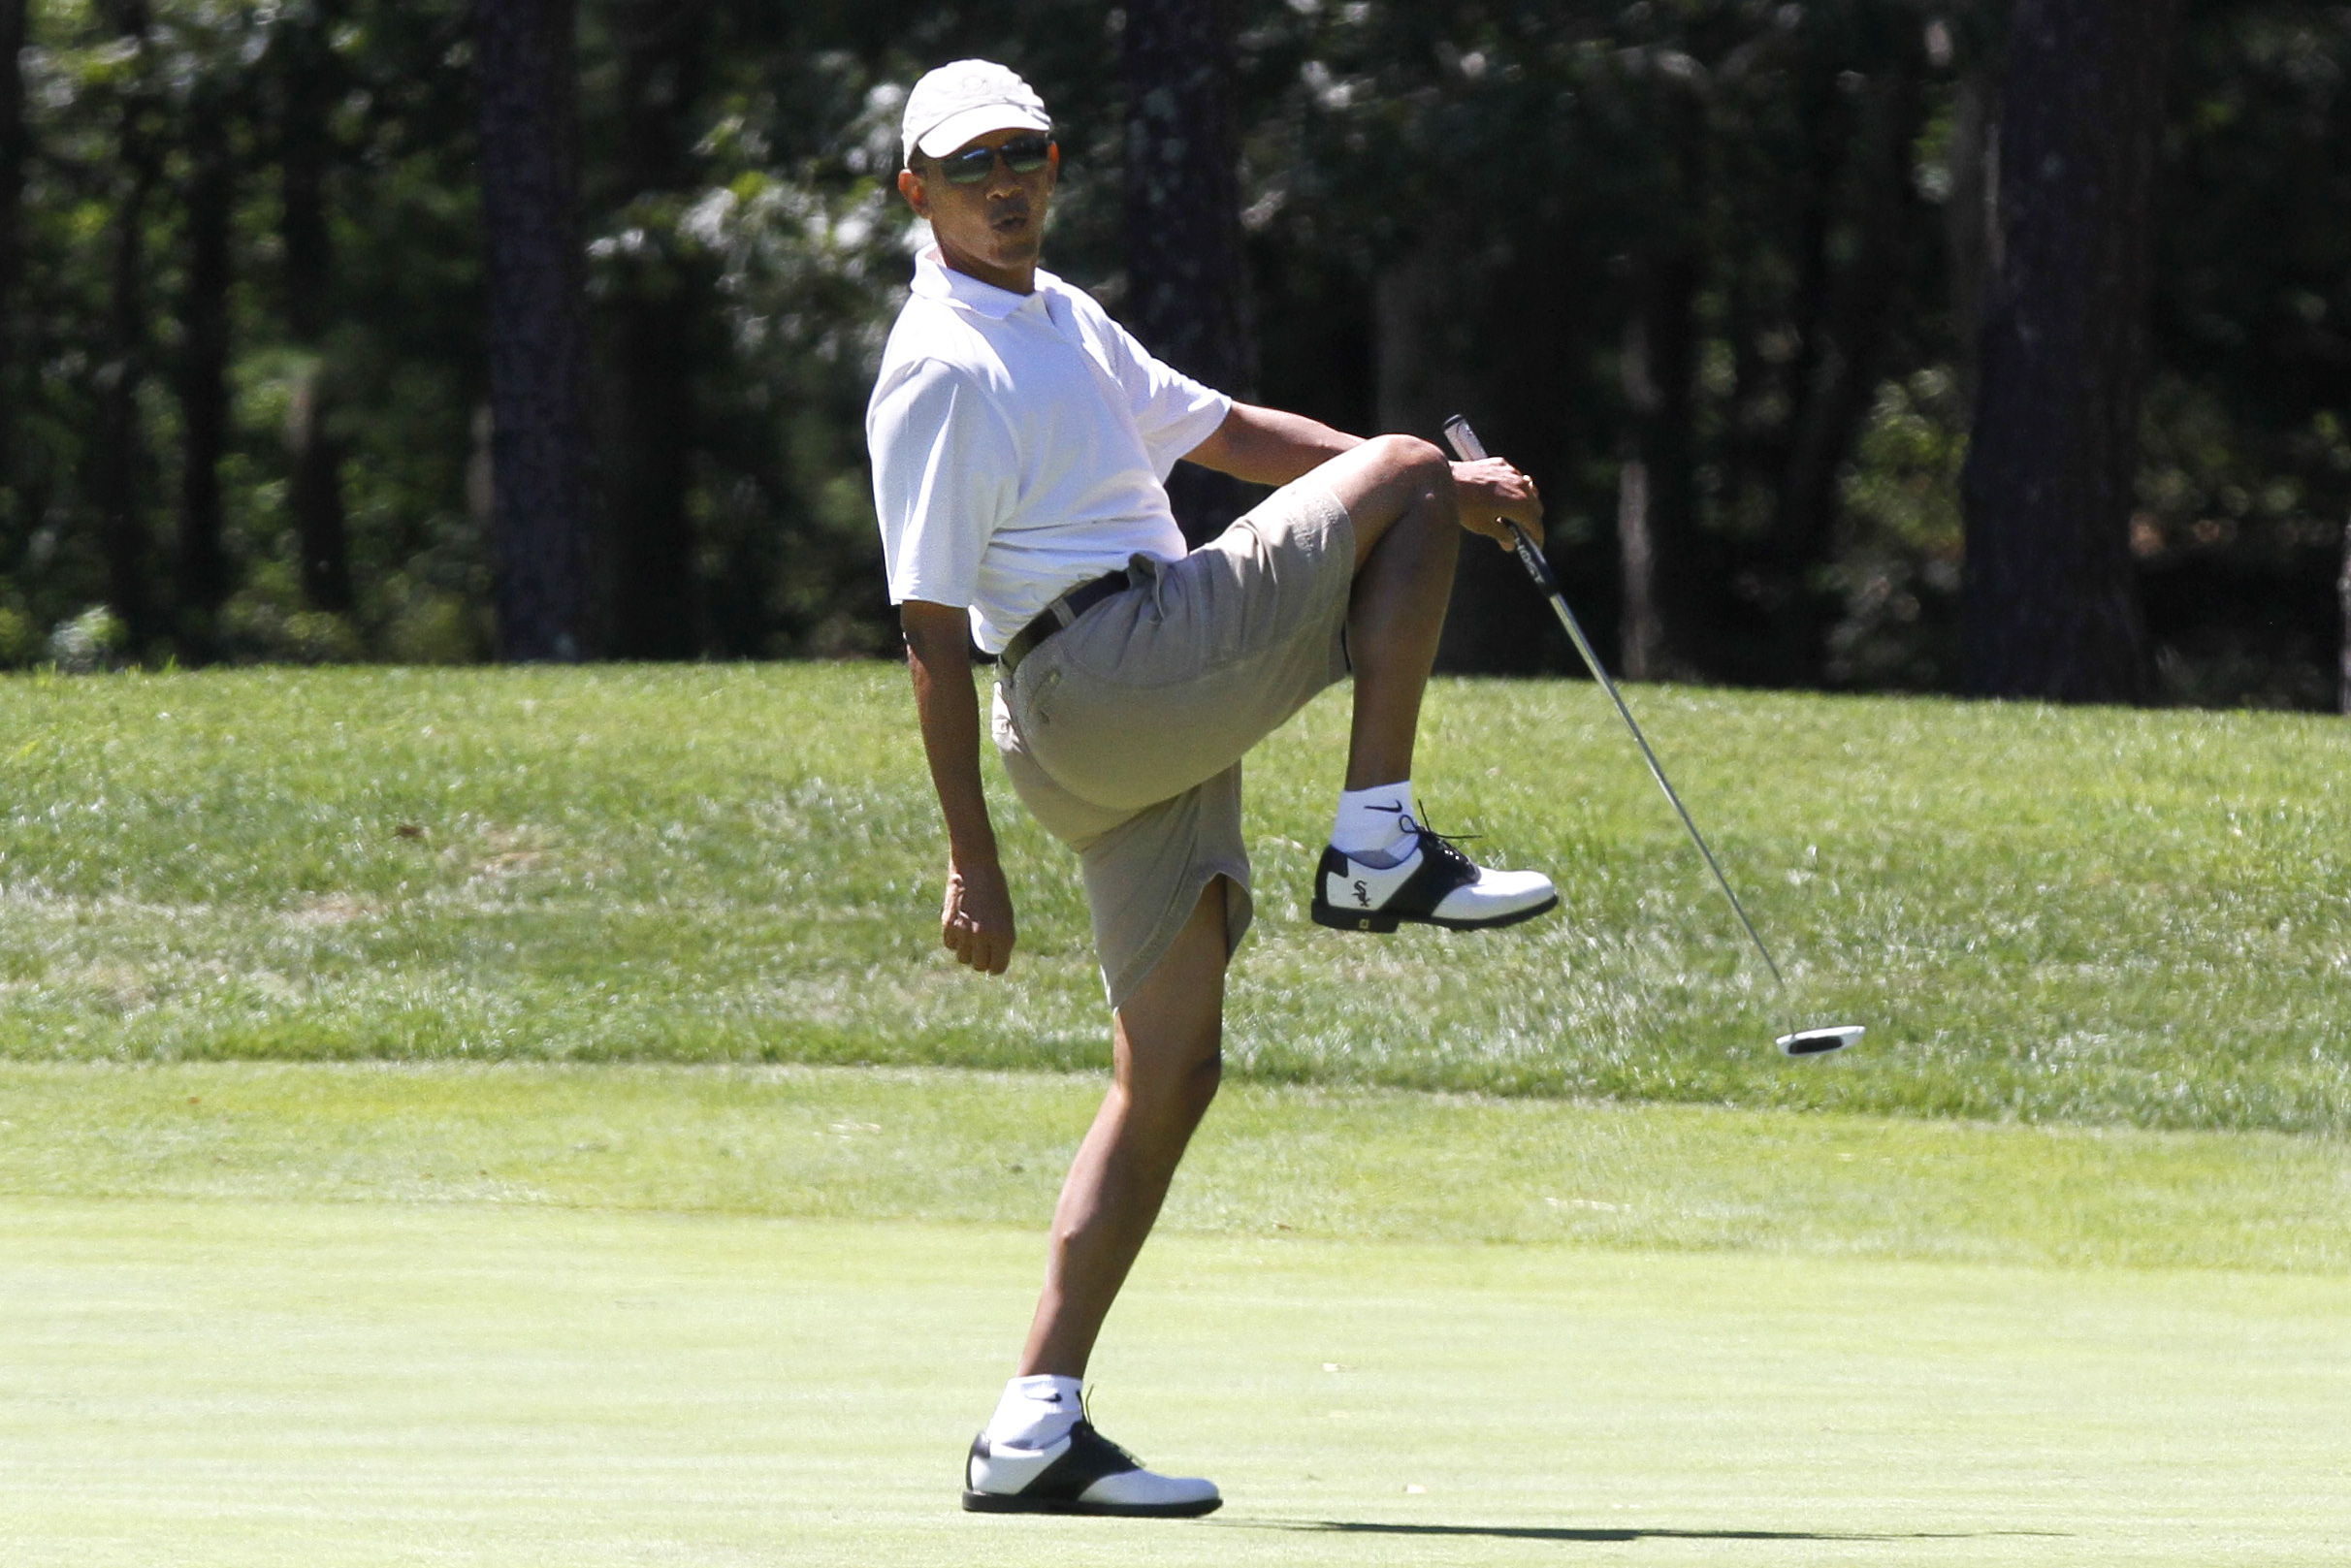 President Barack Obama reacts as he misses a shot while golfing on the first hole at Farm Neck Golf Club in Oak Bluffs, Mass., on the island of Martha's Vineyard on Sunday, Aug. 11, 2013. (AP Photo/Jacquelyn Martin)